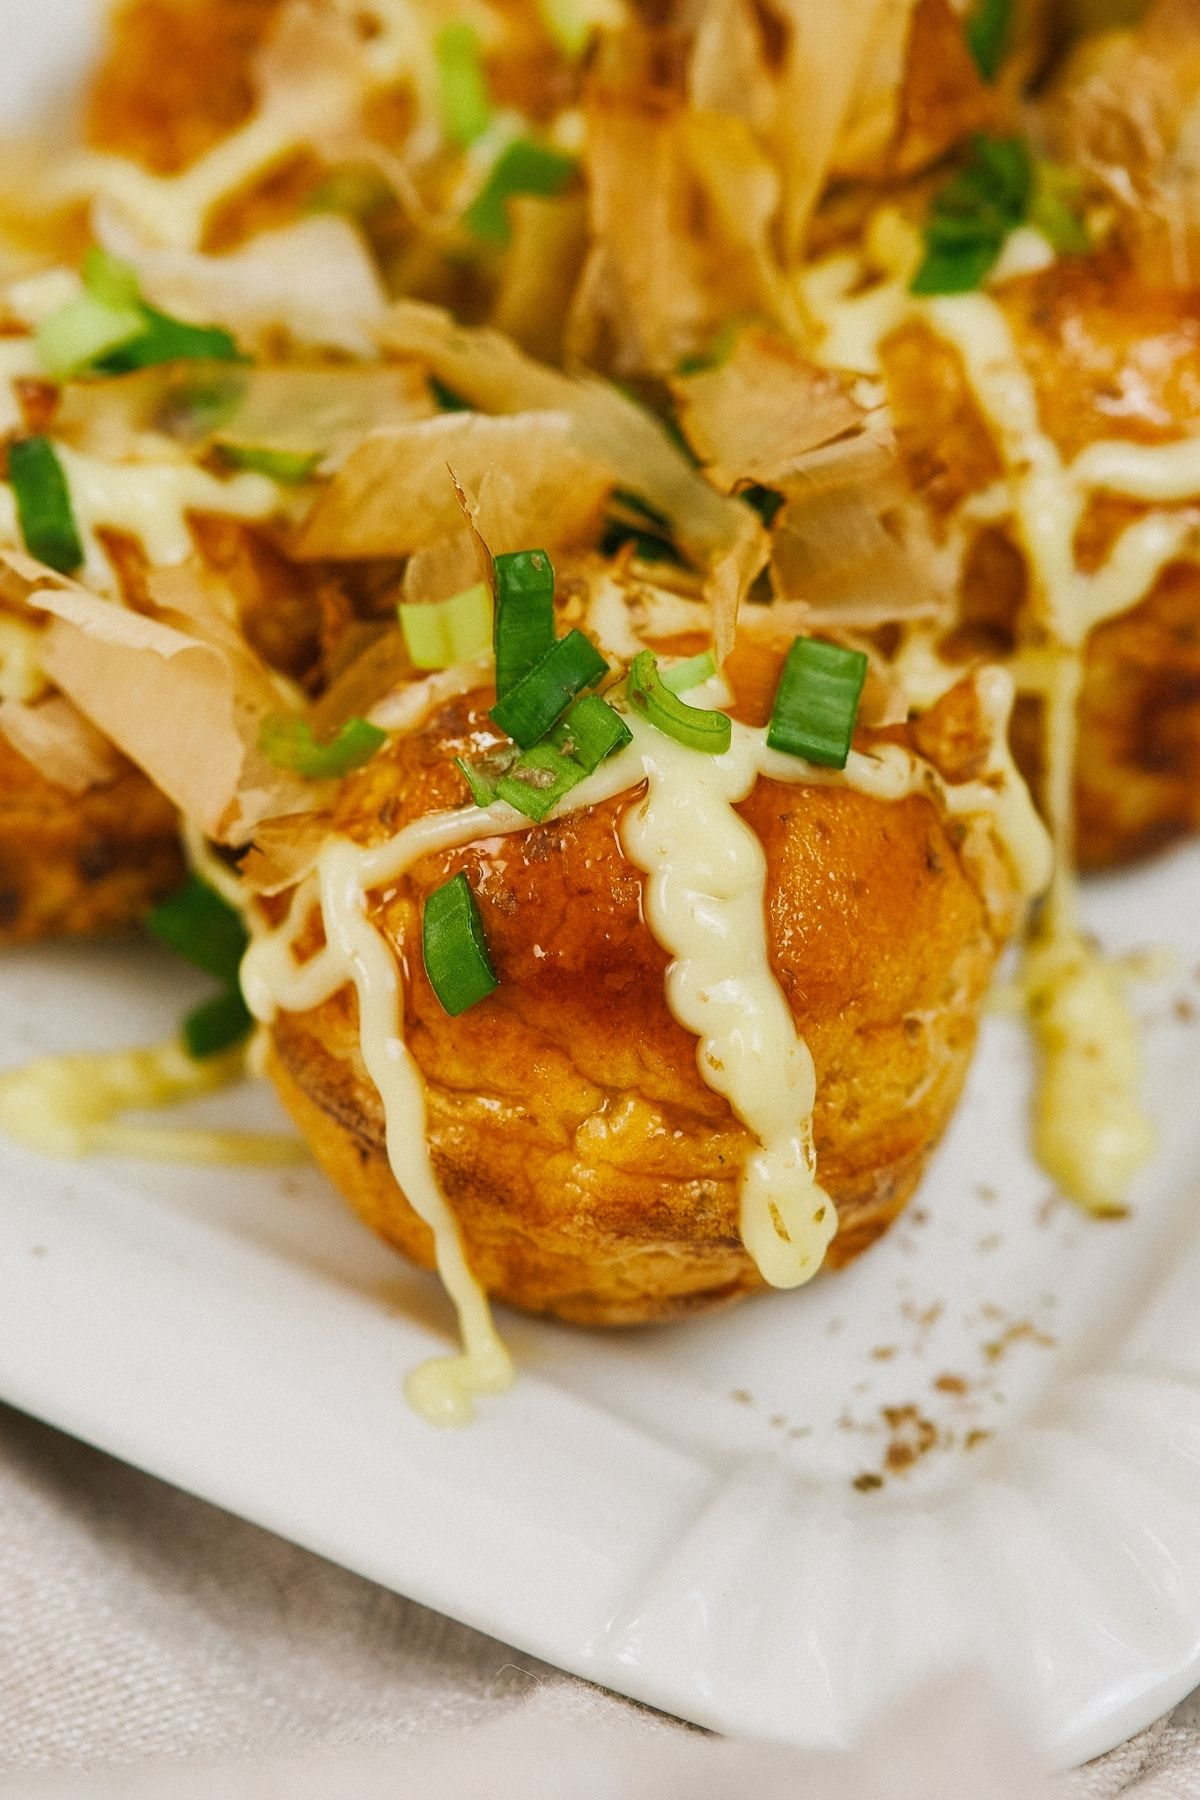 octopus ball with mayonnaise and green onions sitting on plate